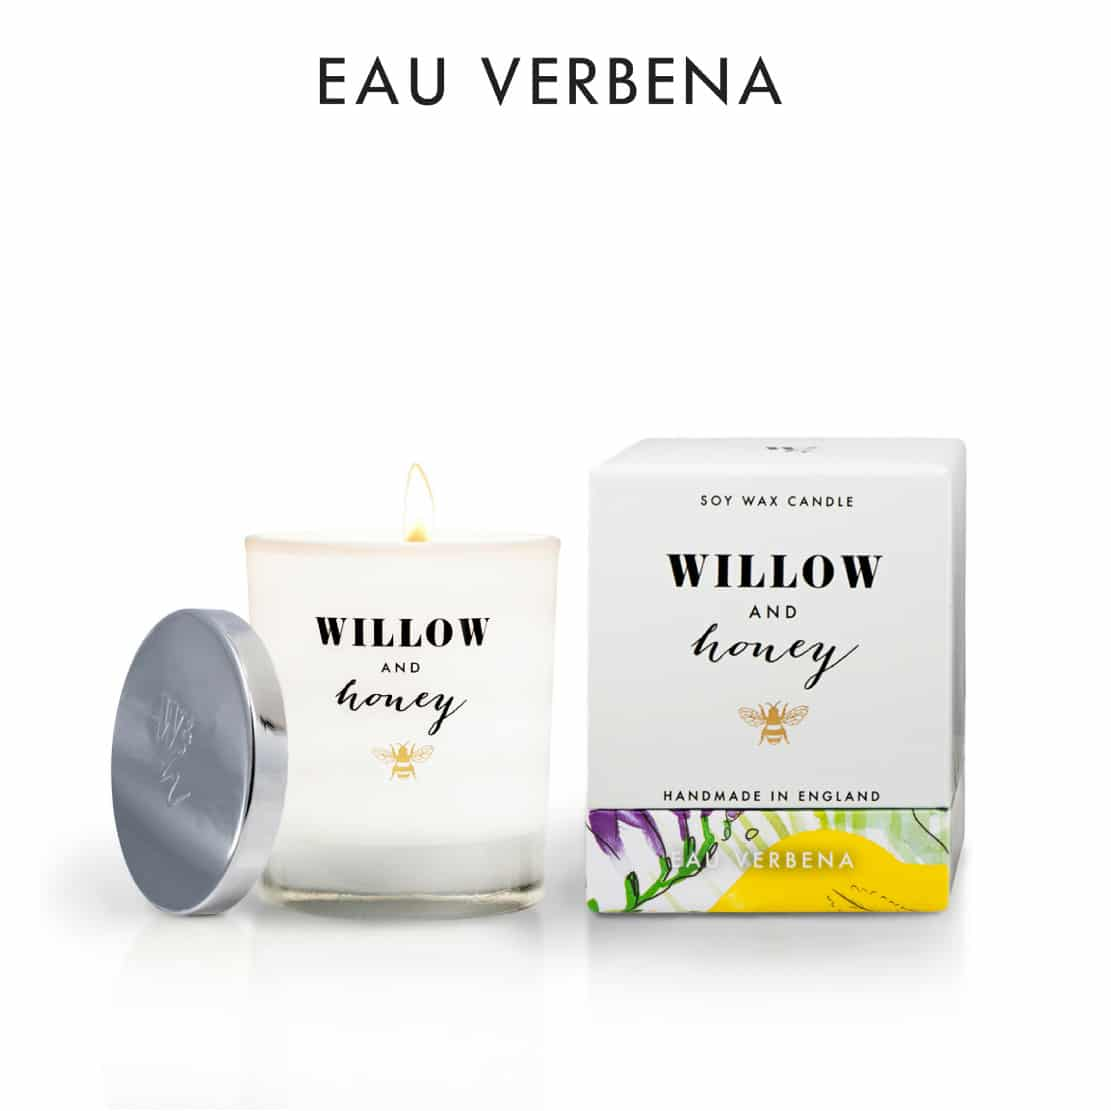 Willow and Honey Eau Verbena Candle 220g